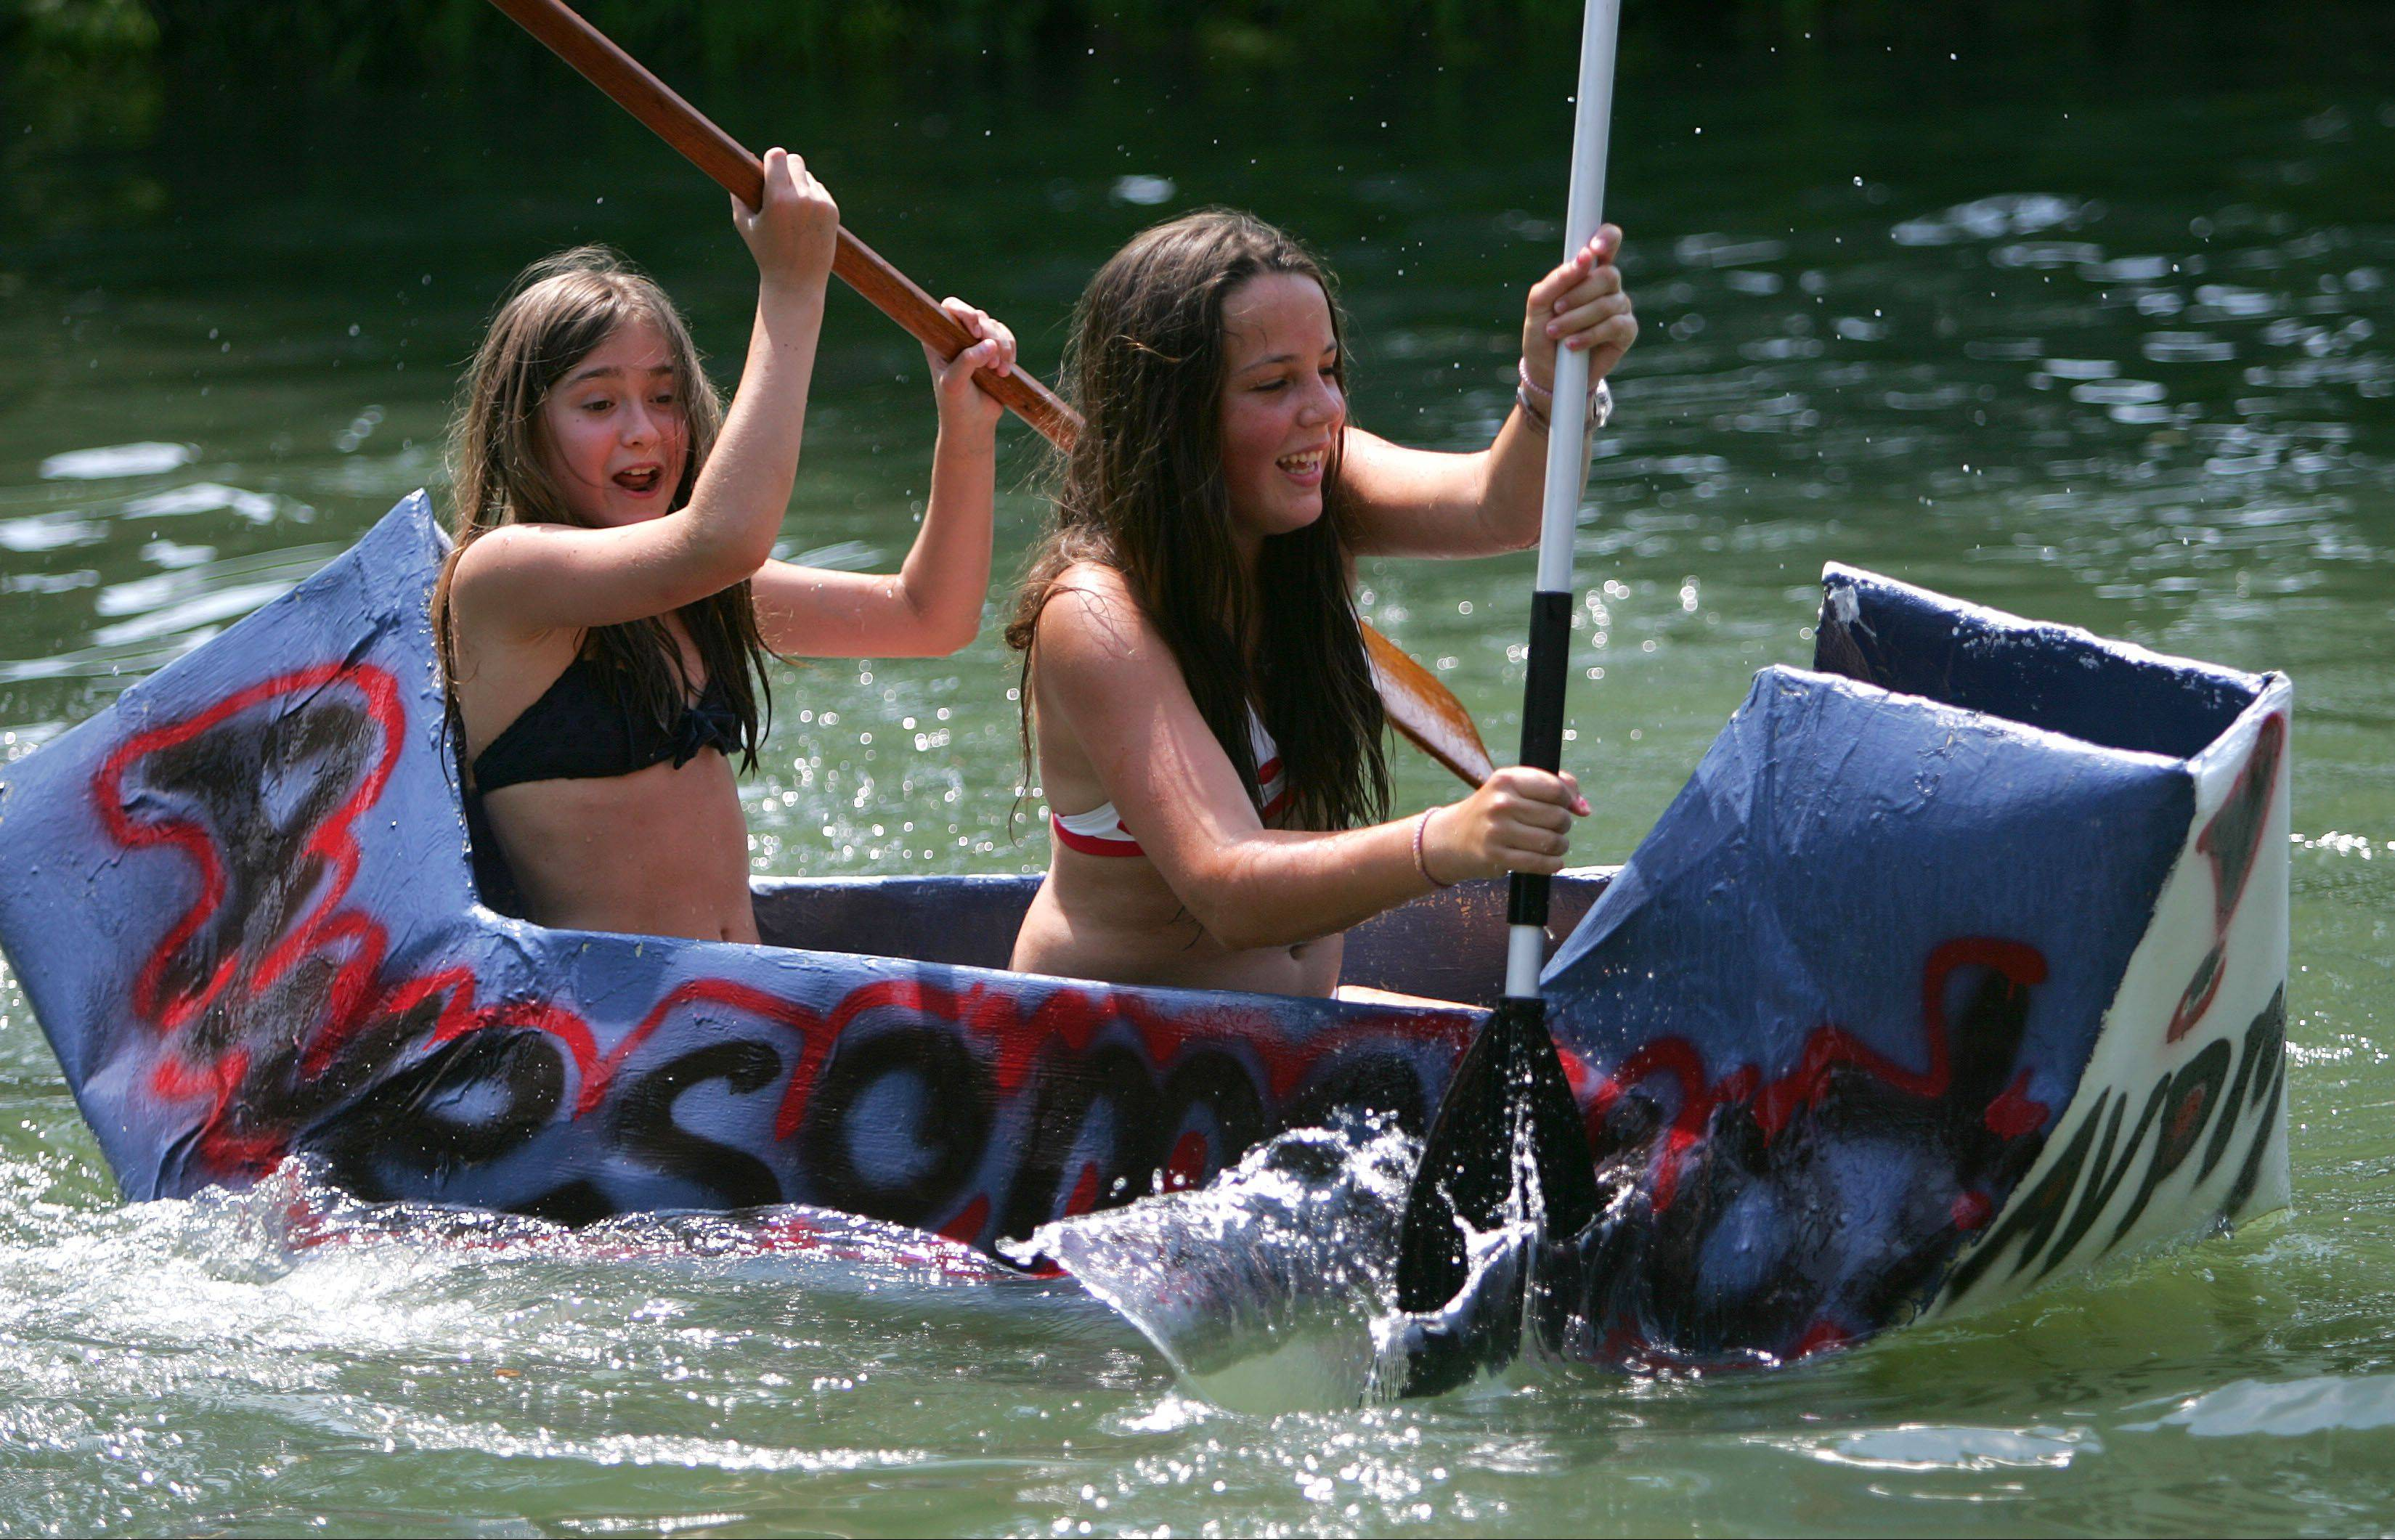 Twelve-year-old Sahsa Pinchuk, left, and 14-year-old Naomie Lapointe, both of Lincolnshire compete in a carboad boat regatta as Lincolnshire held its Red White and Boom 2012 event Wedensday at Spring Lake Park.